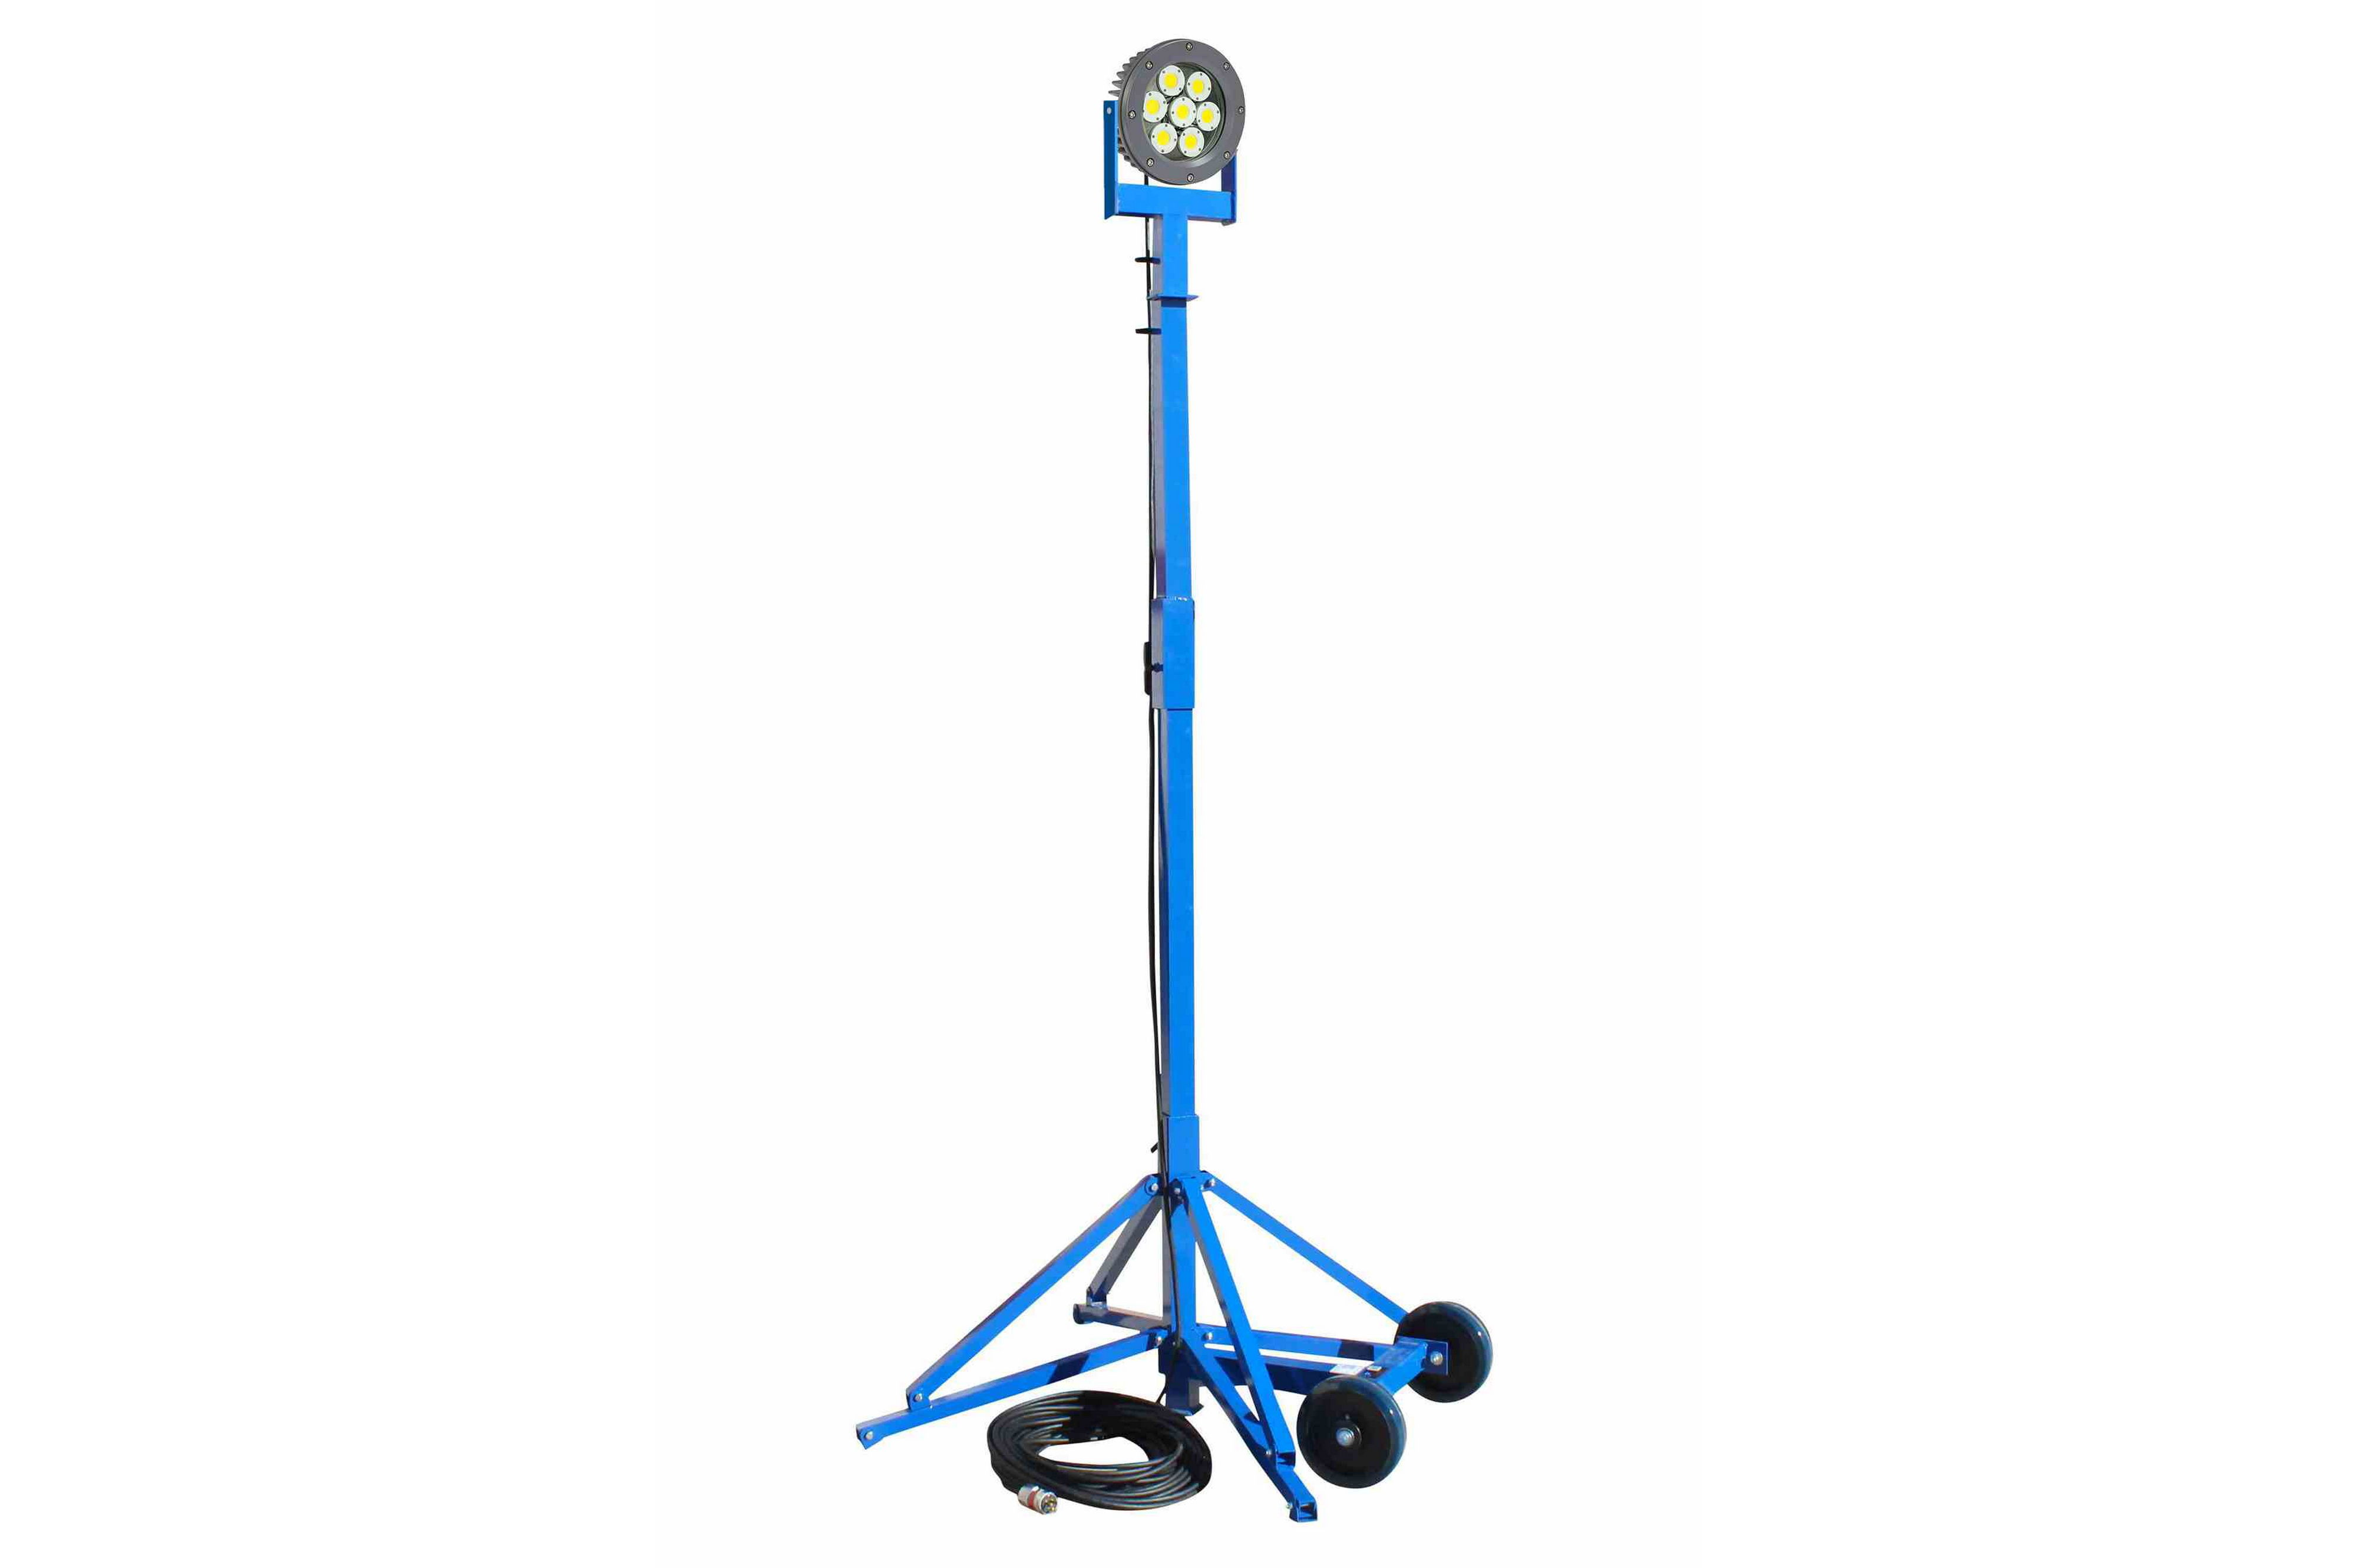 140w Explosion Proof Led Light Tower